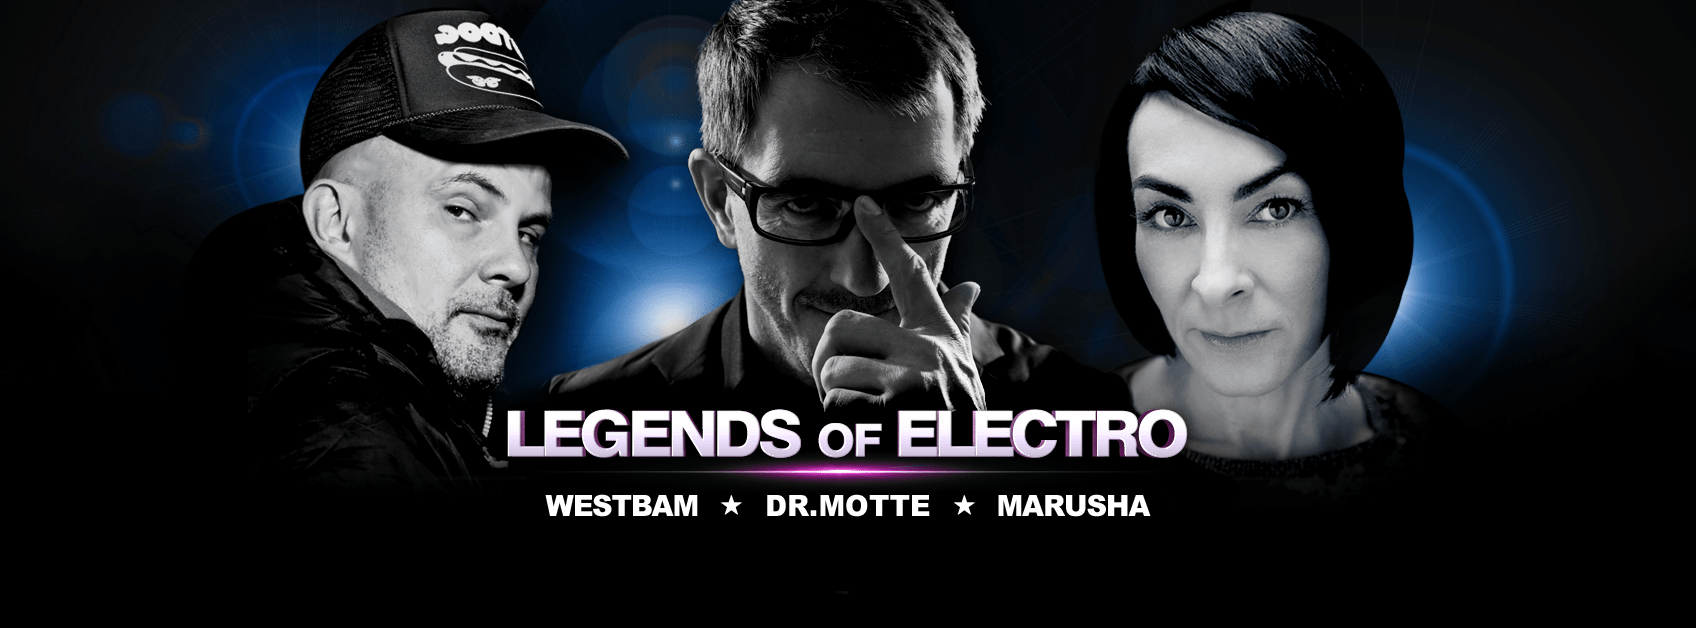 Legends Of Electro 2015